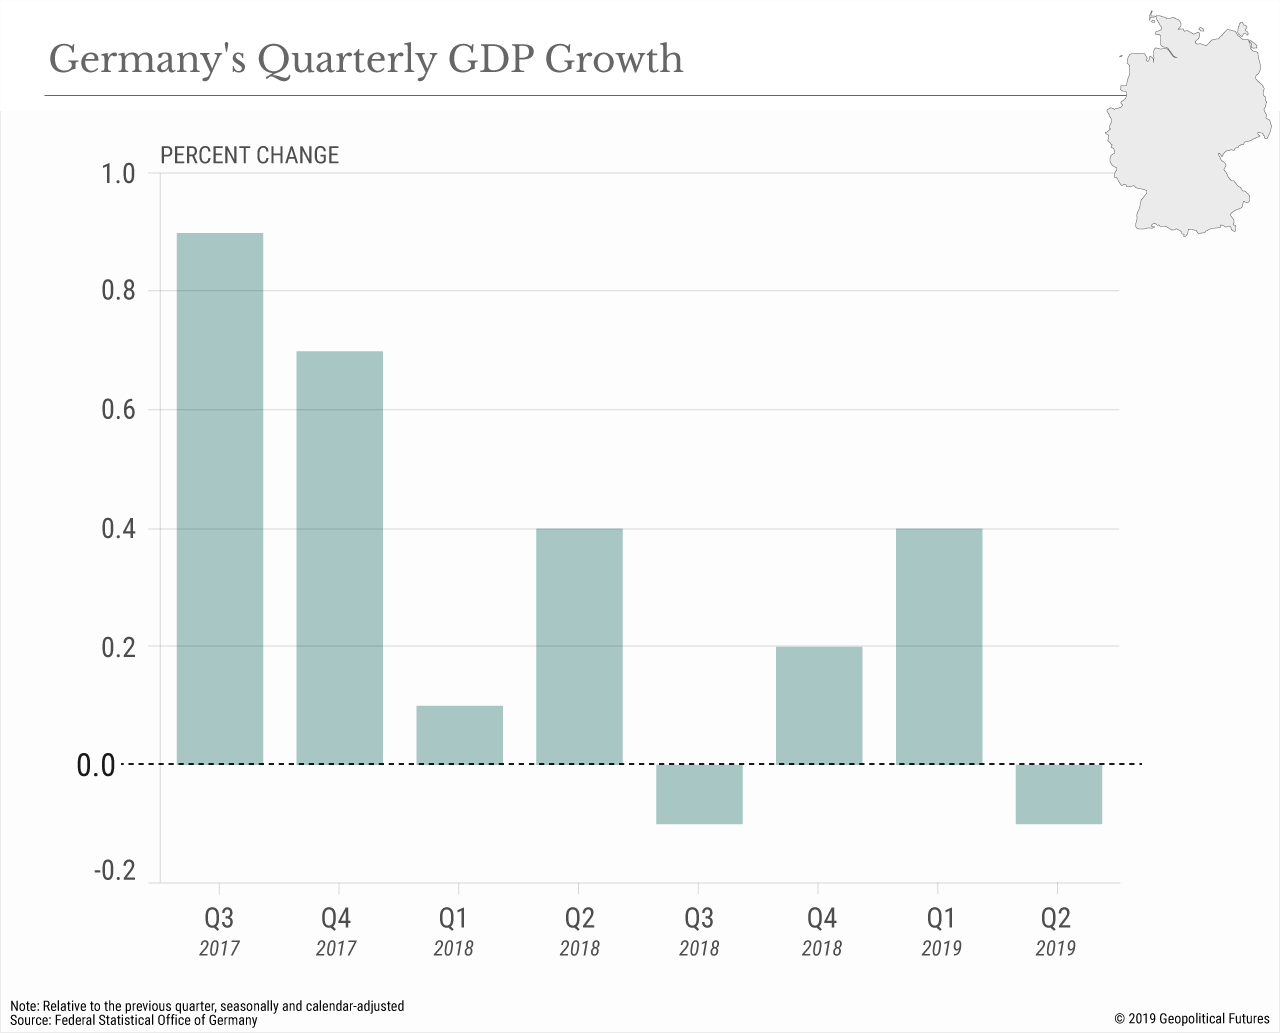 Germany's Quarterly GDP Growth